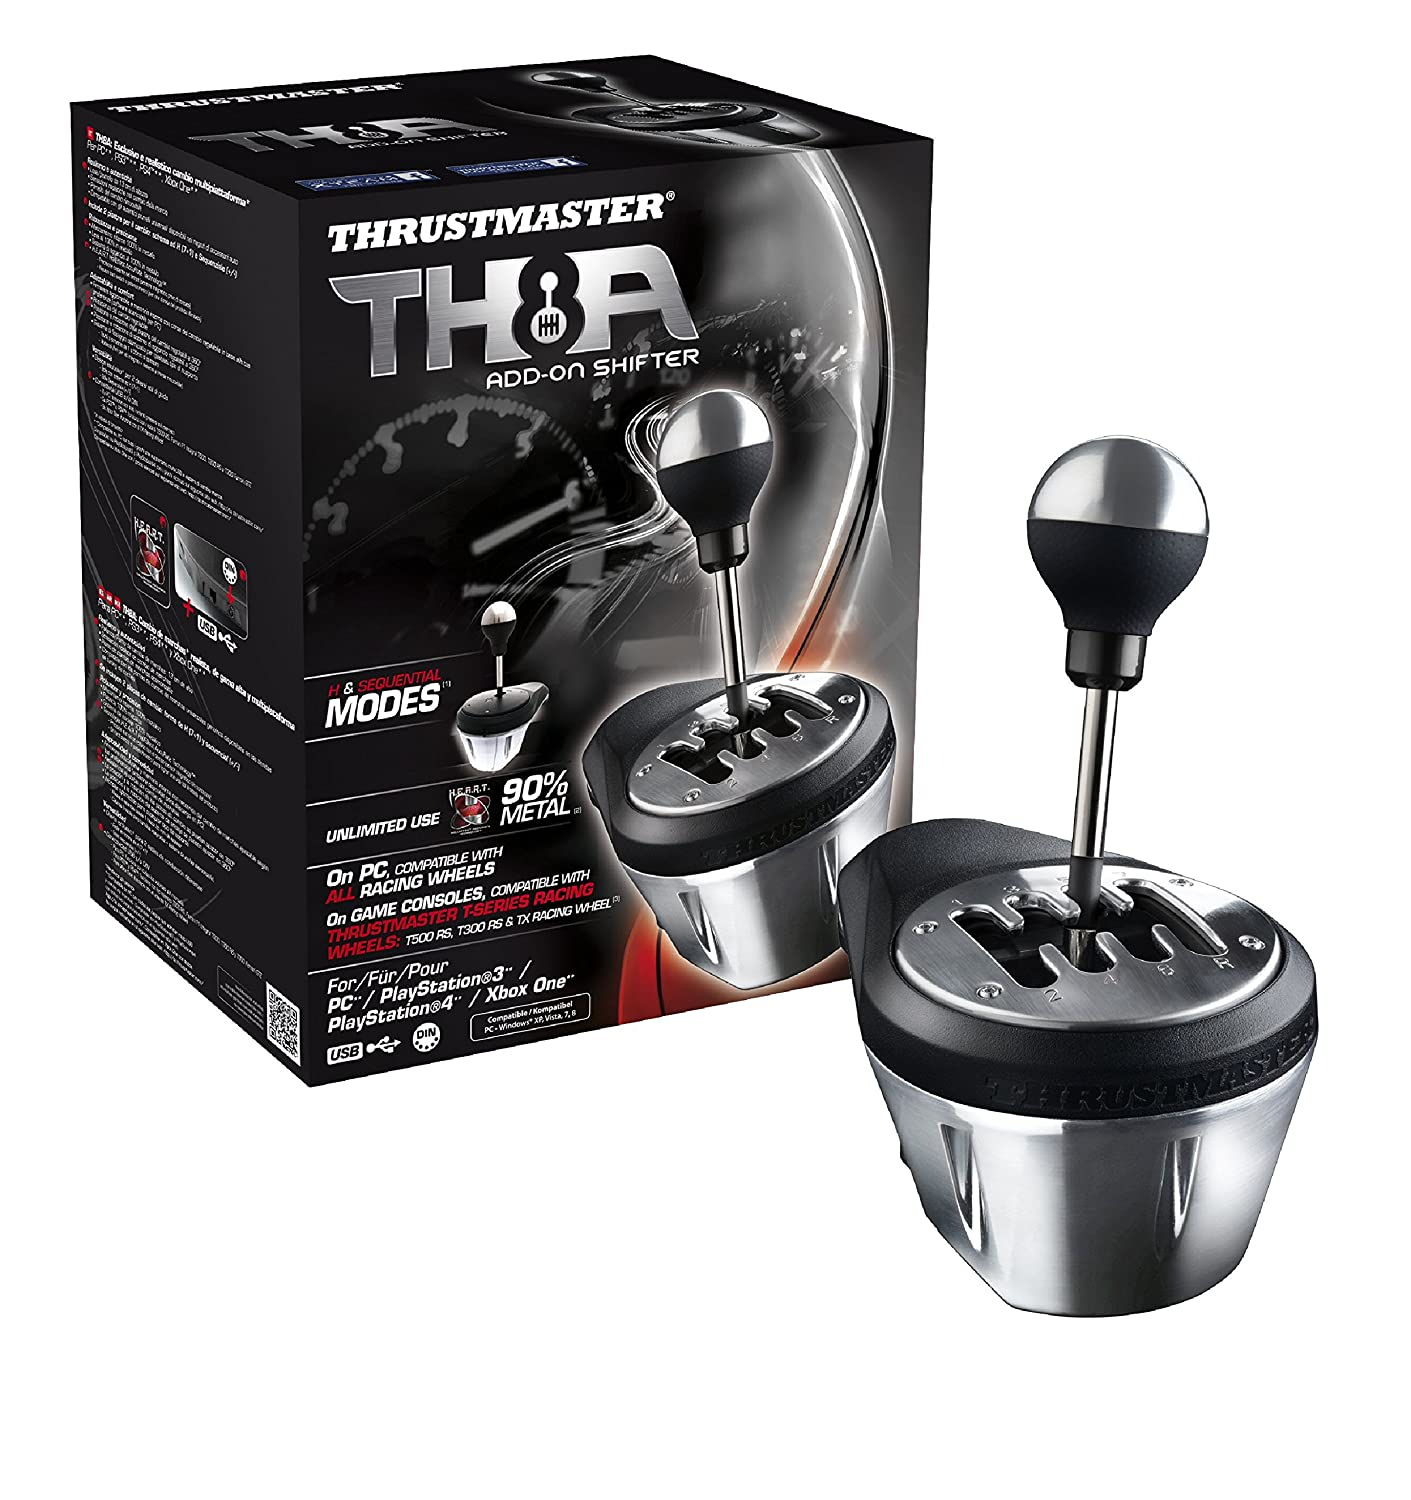 TH8A シフター for PlayStation4/PlayStation3/Xbox One【正規保証品】